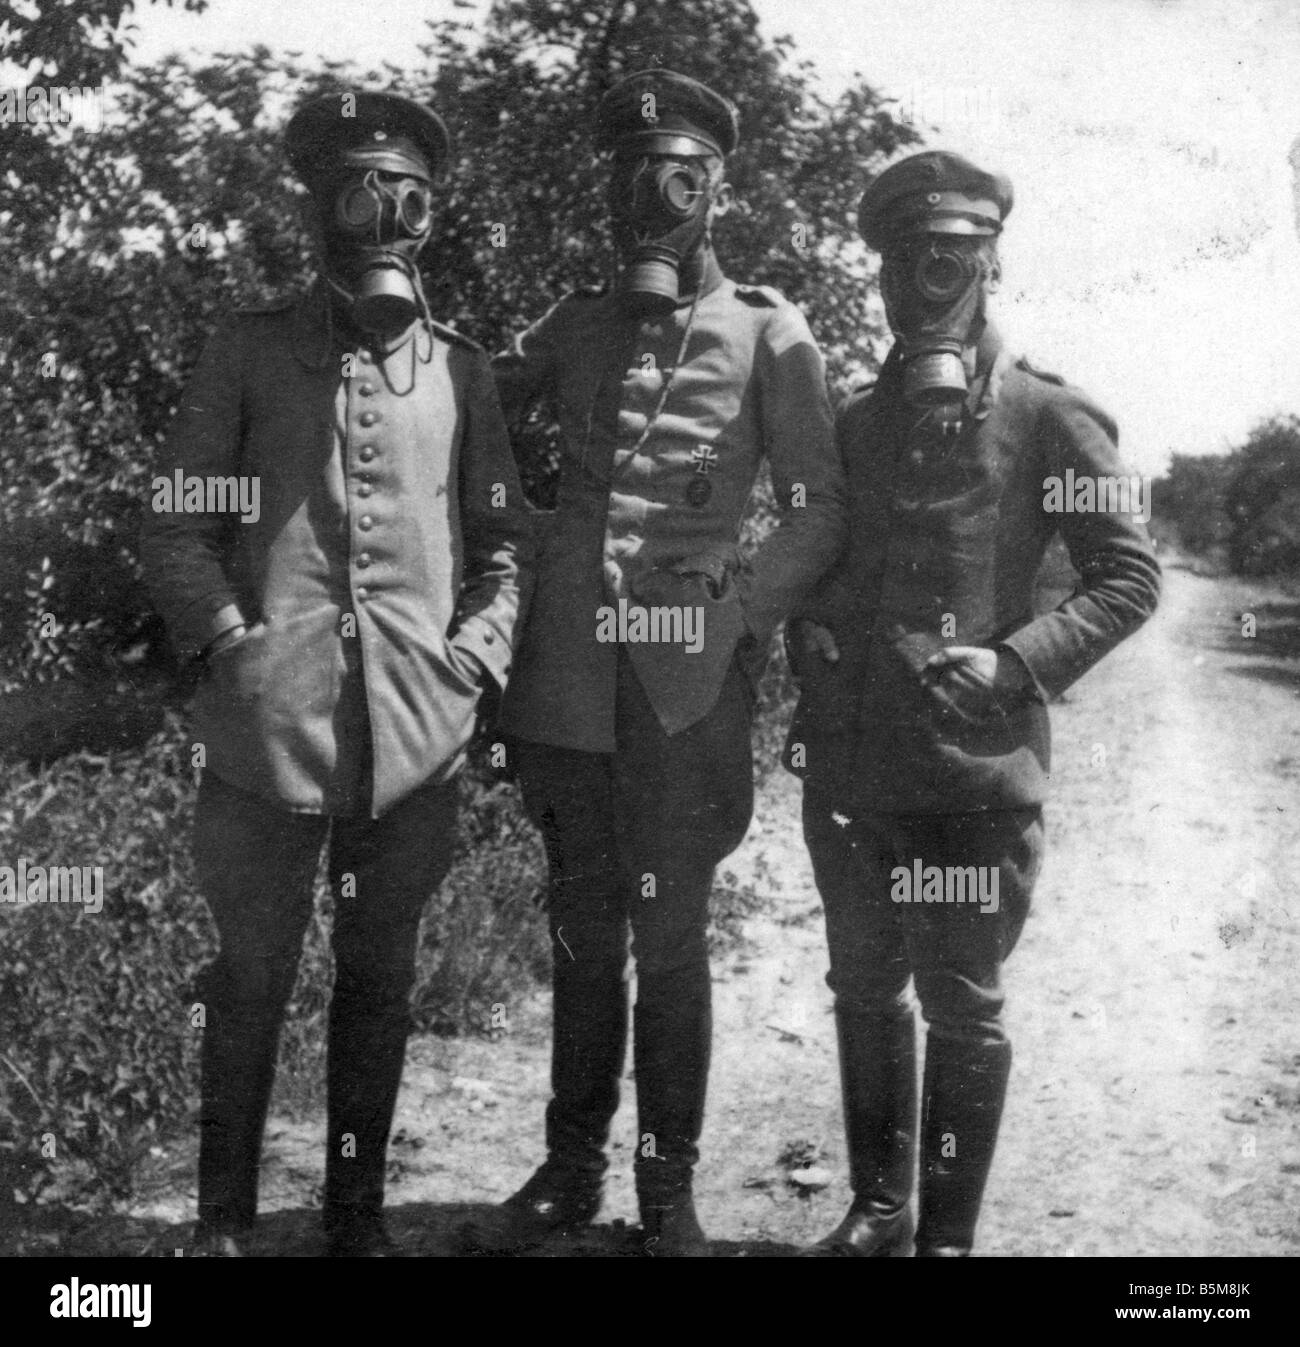 2 G55 G1 1915 7 WWI German soldiers in gas masks History WWI Gas warfare German soldiers wearing gas masks Photo - Stock Image